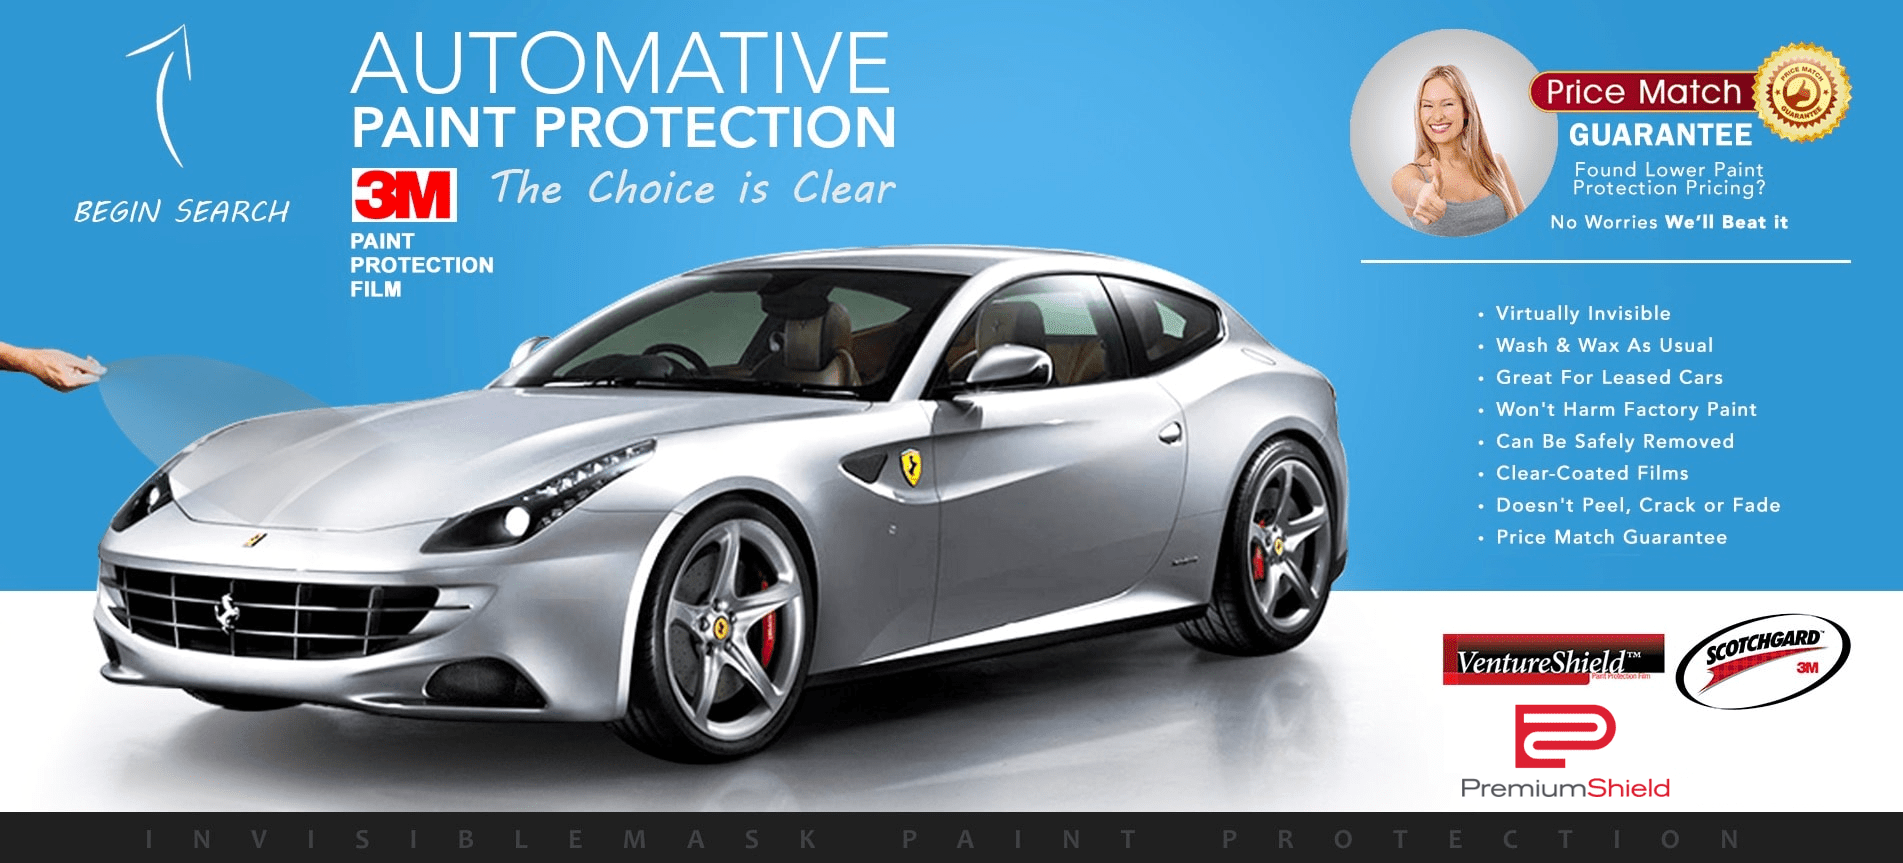 Search for Paint Protection Kit